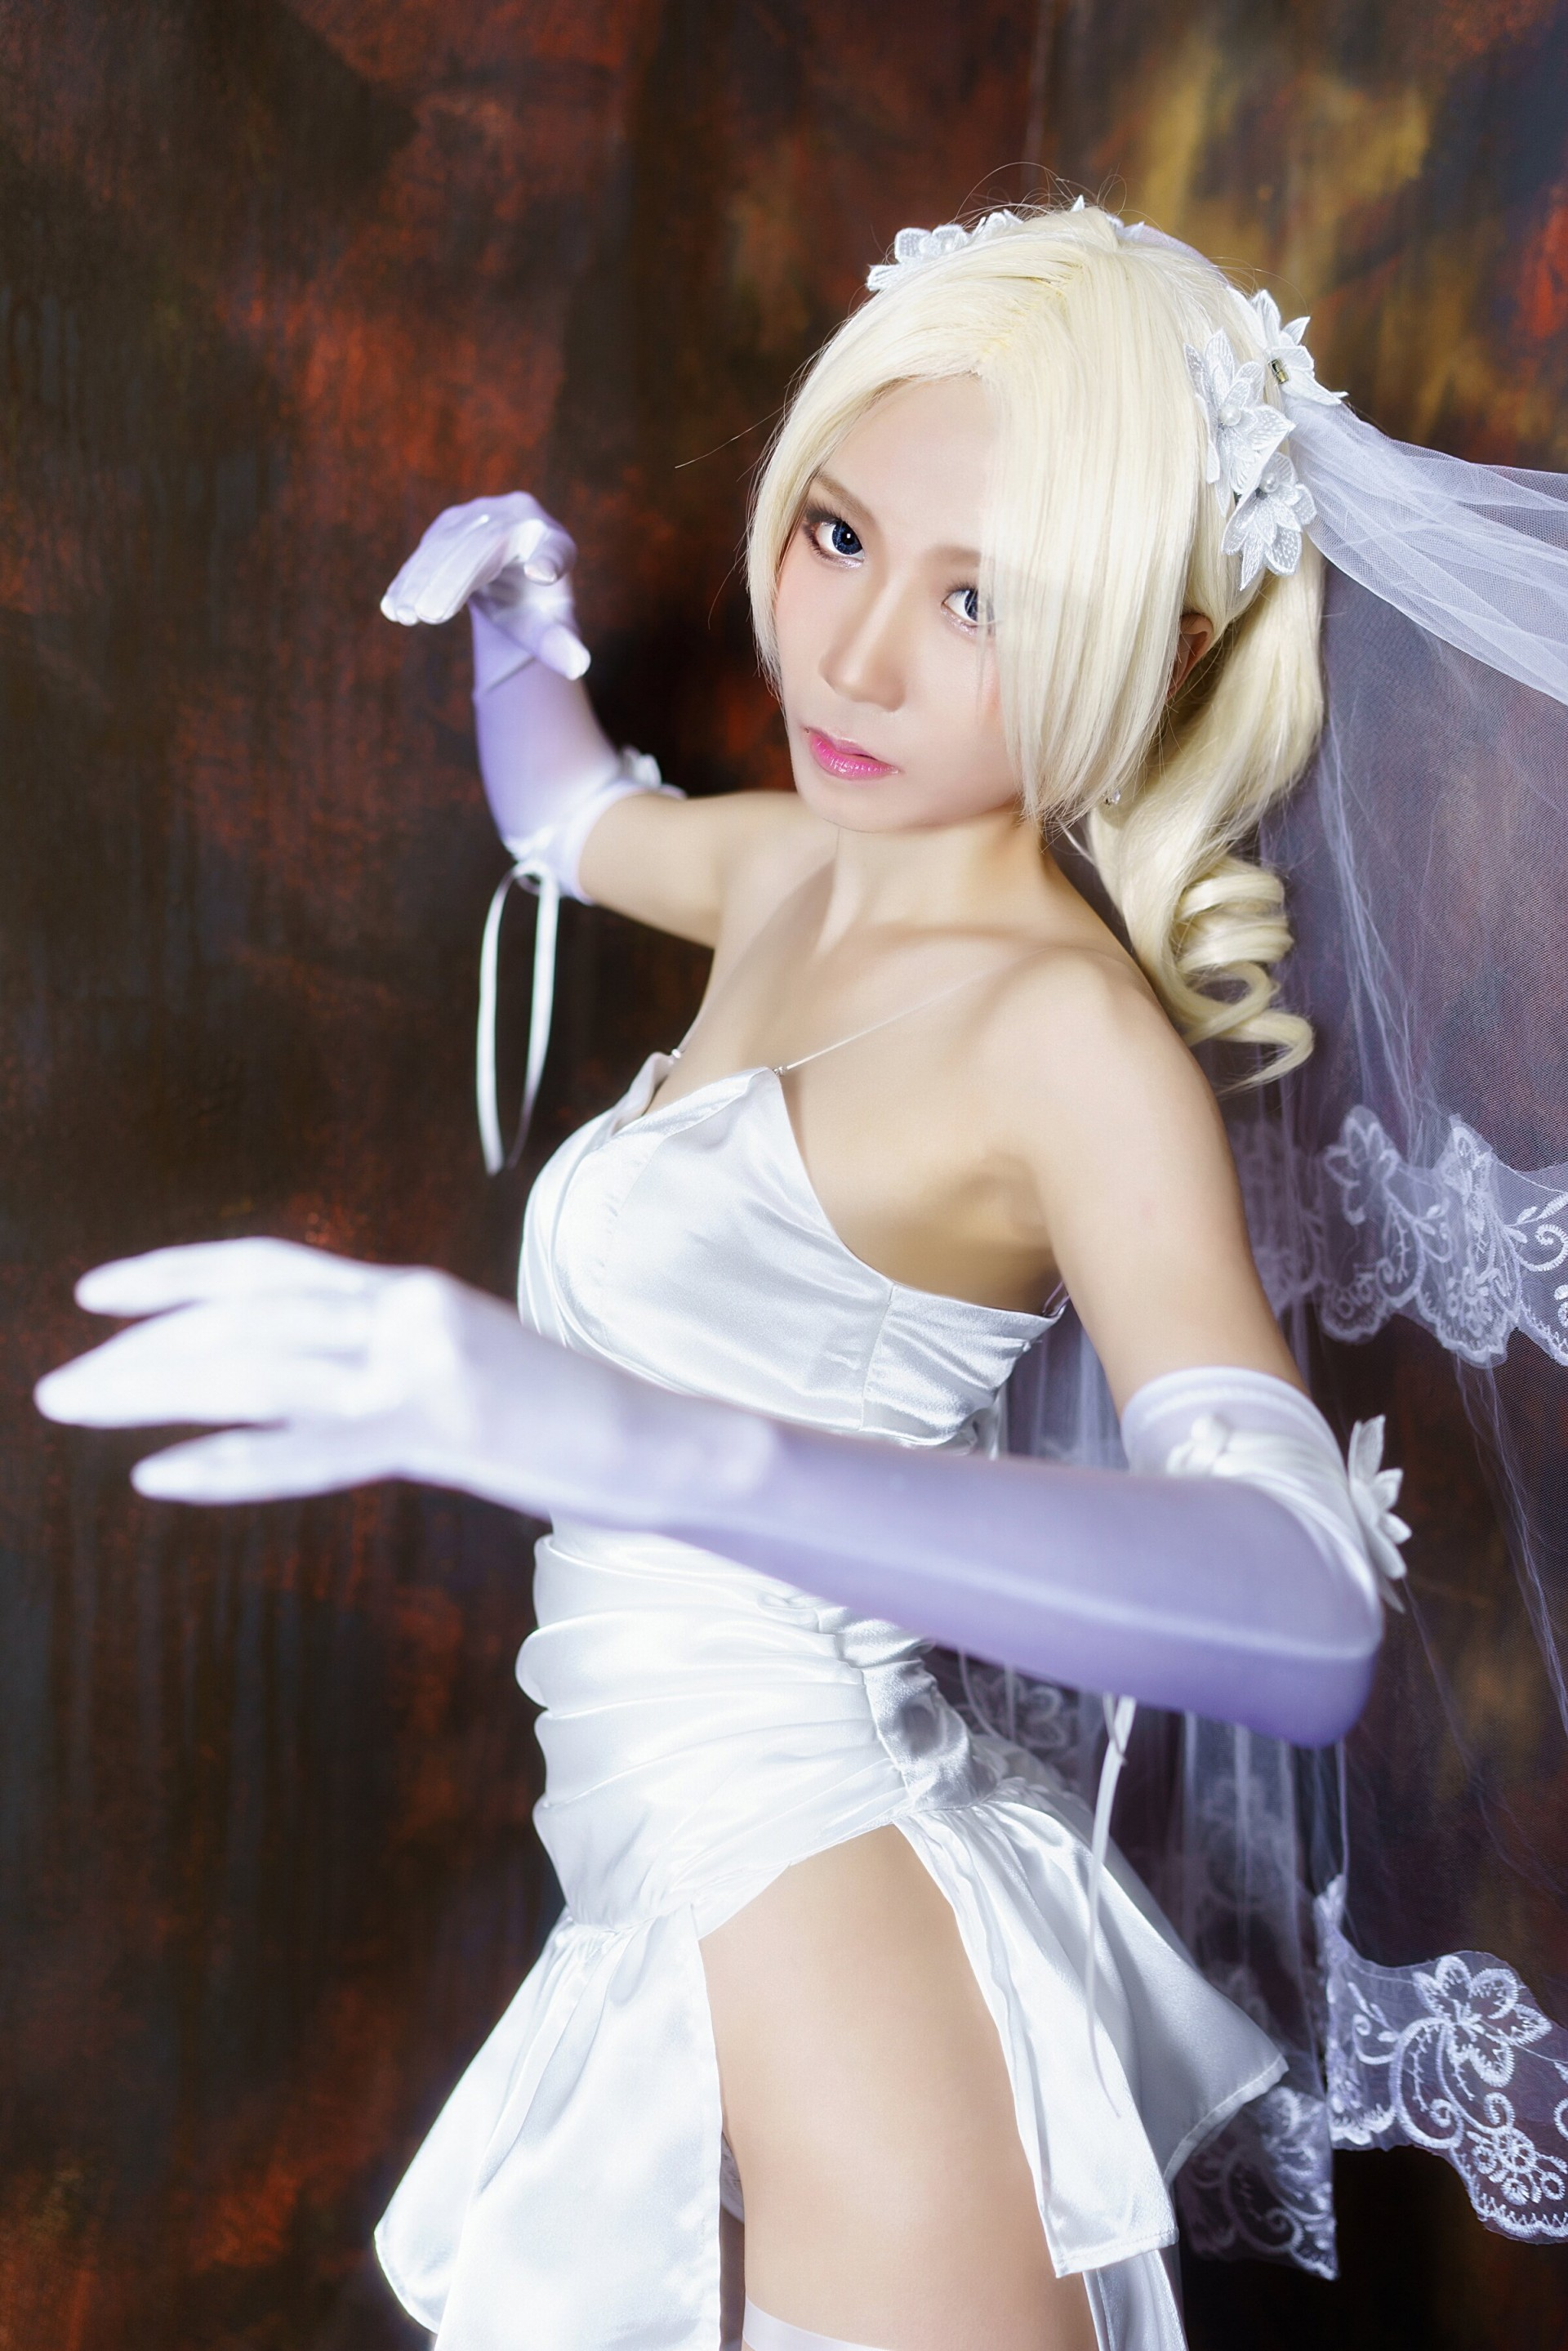 Tekken 7 Wedding Dress Nina Williams Cosplay Yujin